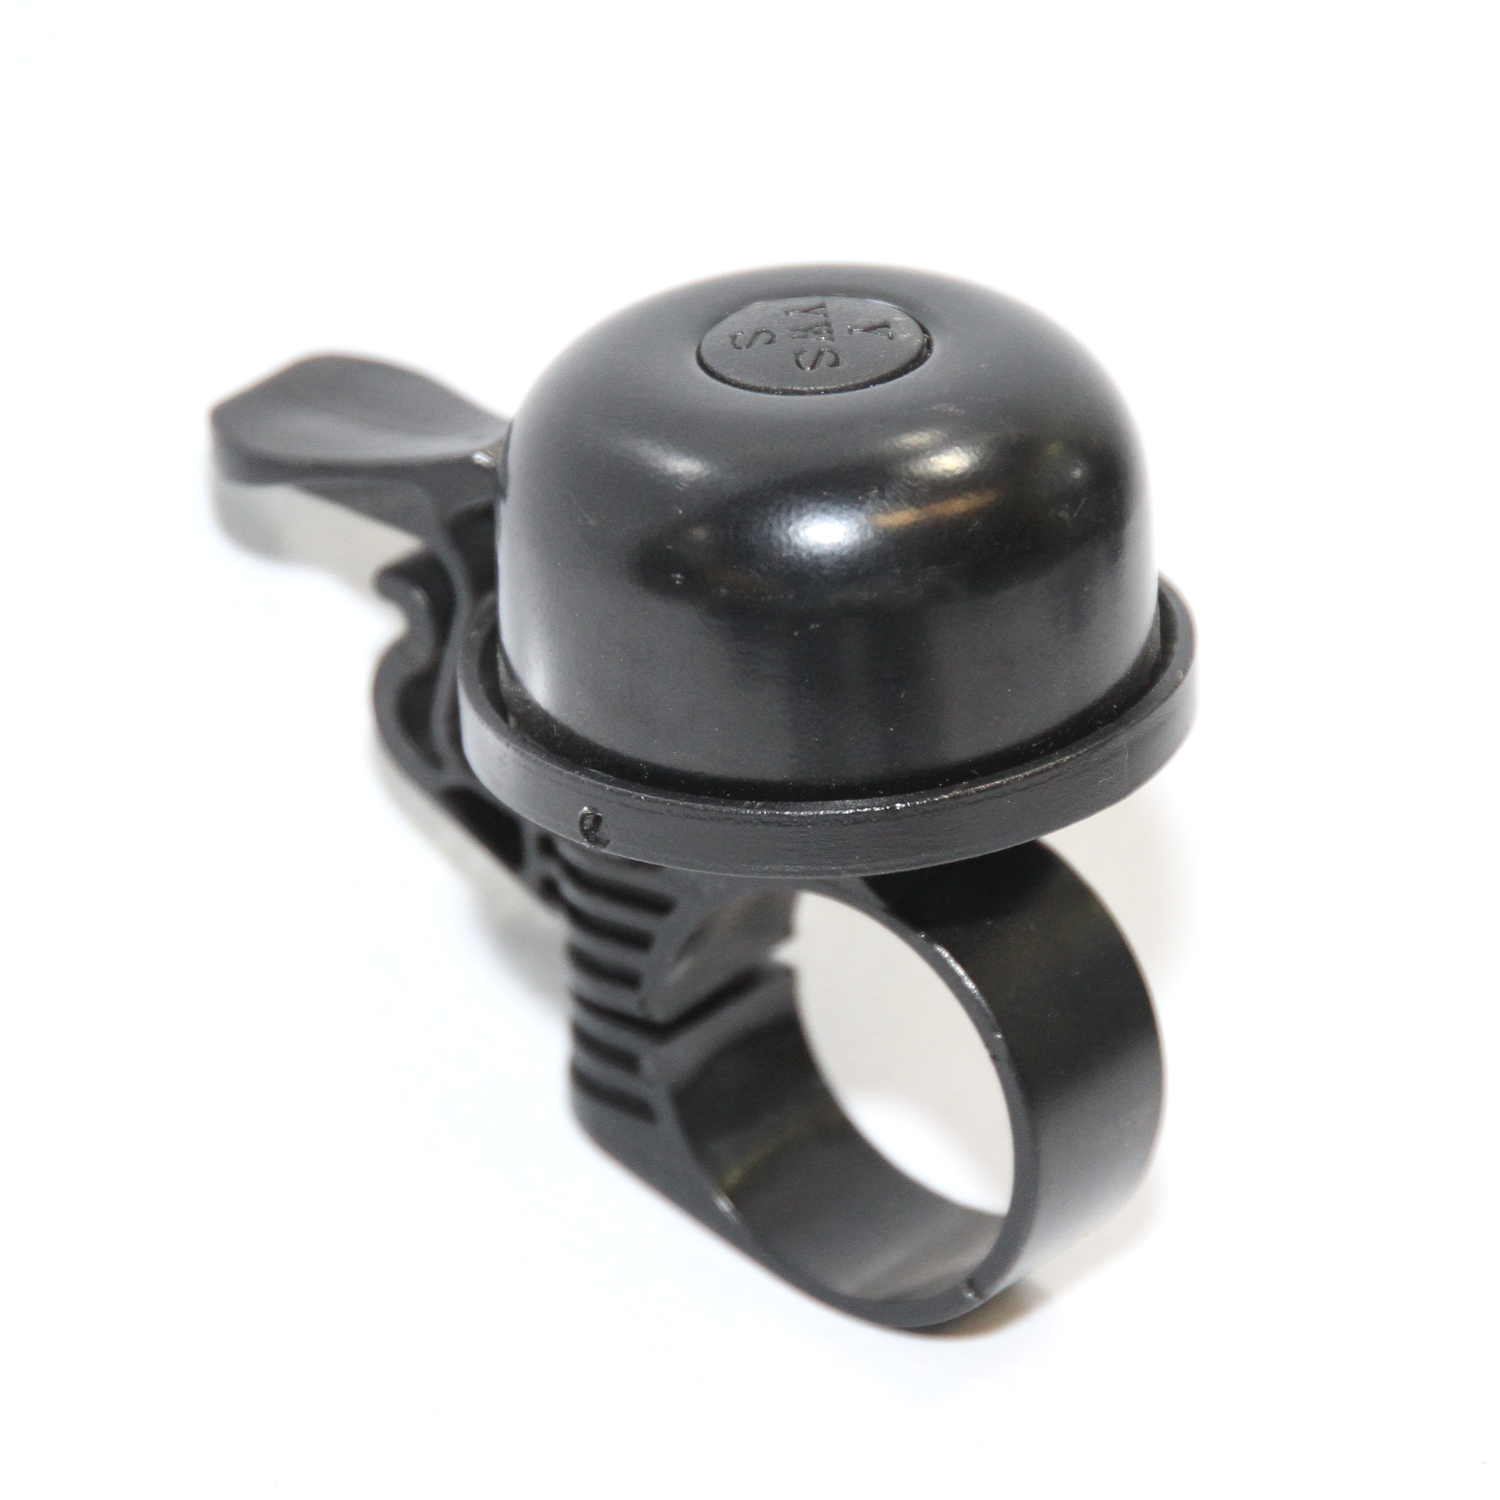 YWS Black Ping Bike Bell